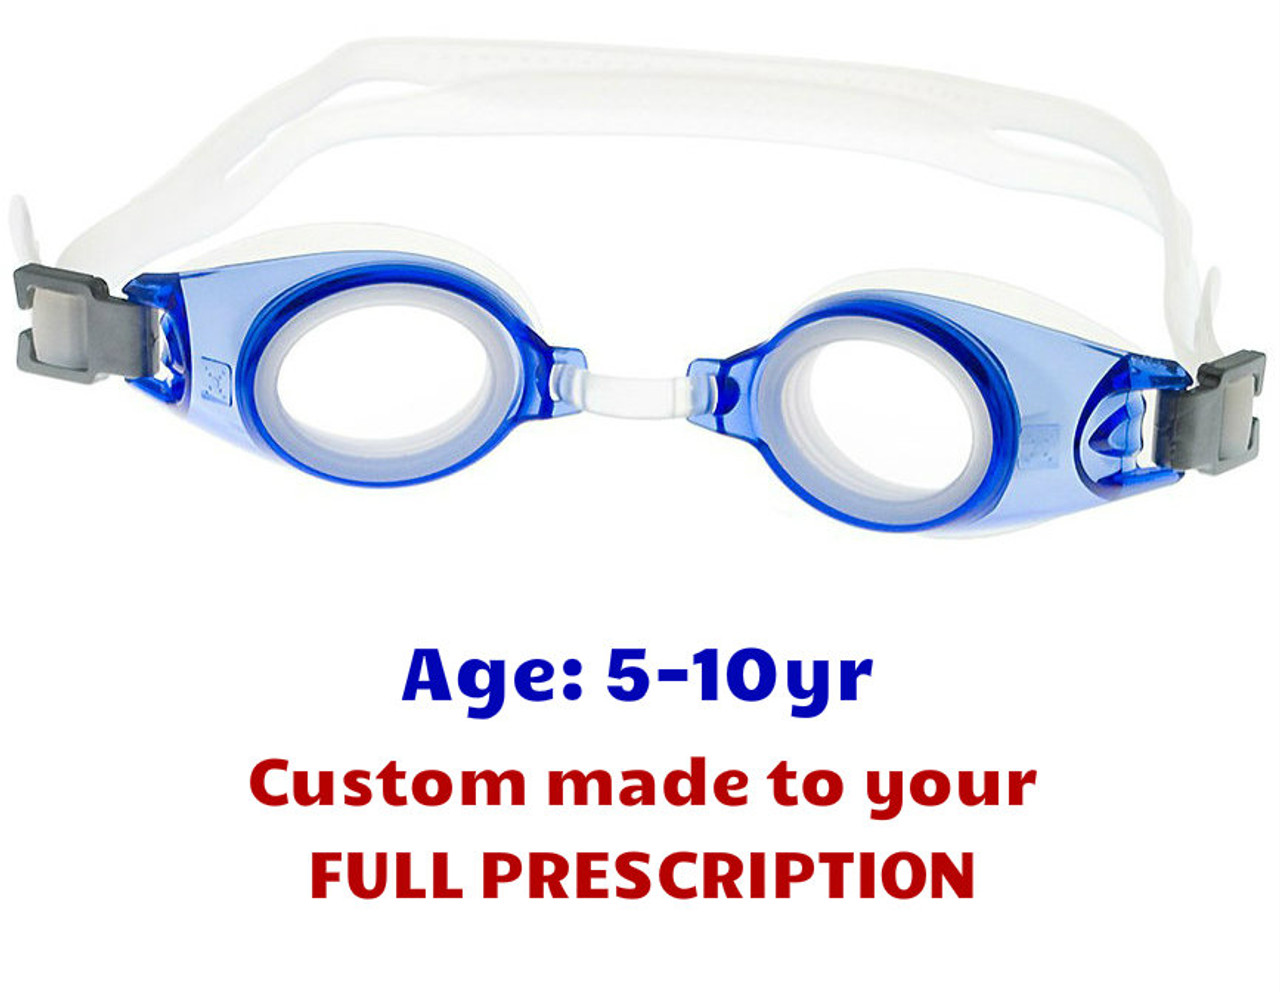 ff3859c56b PE8 Blue Kids Prescription Swim Goggles Shown with Standard Clear Lenses